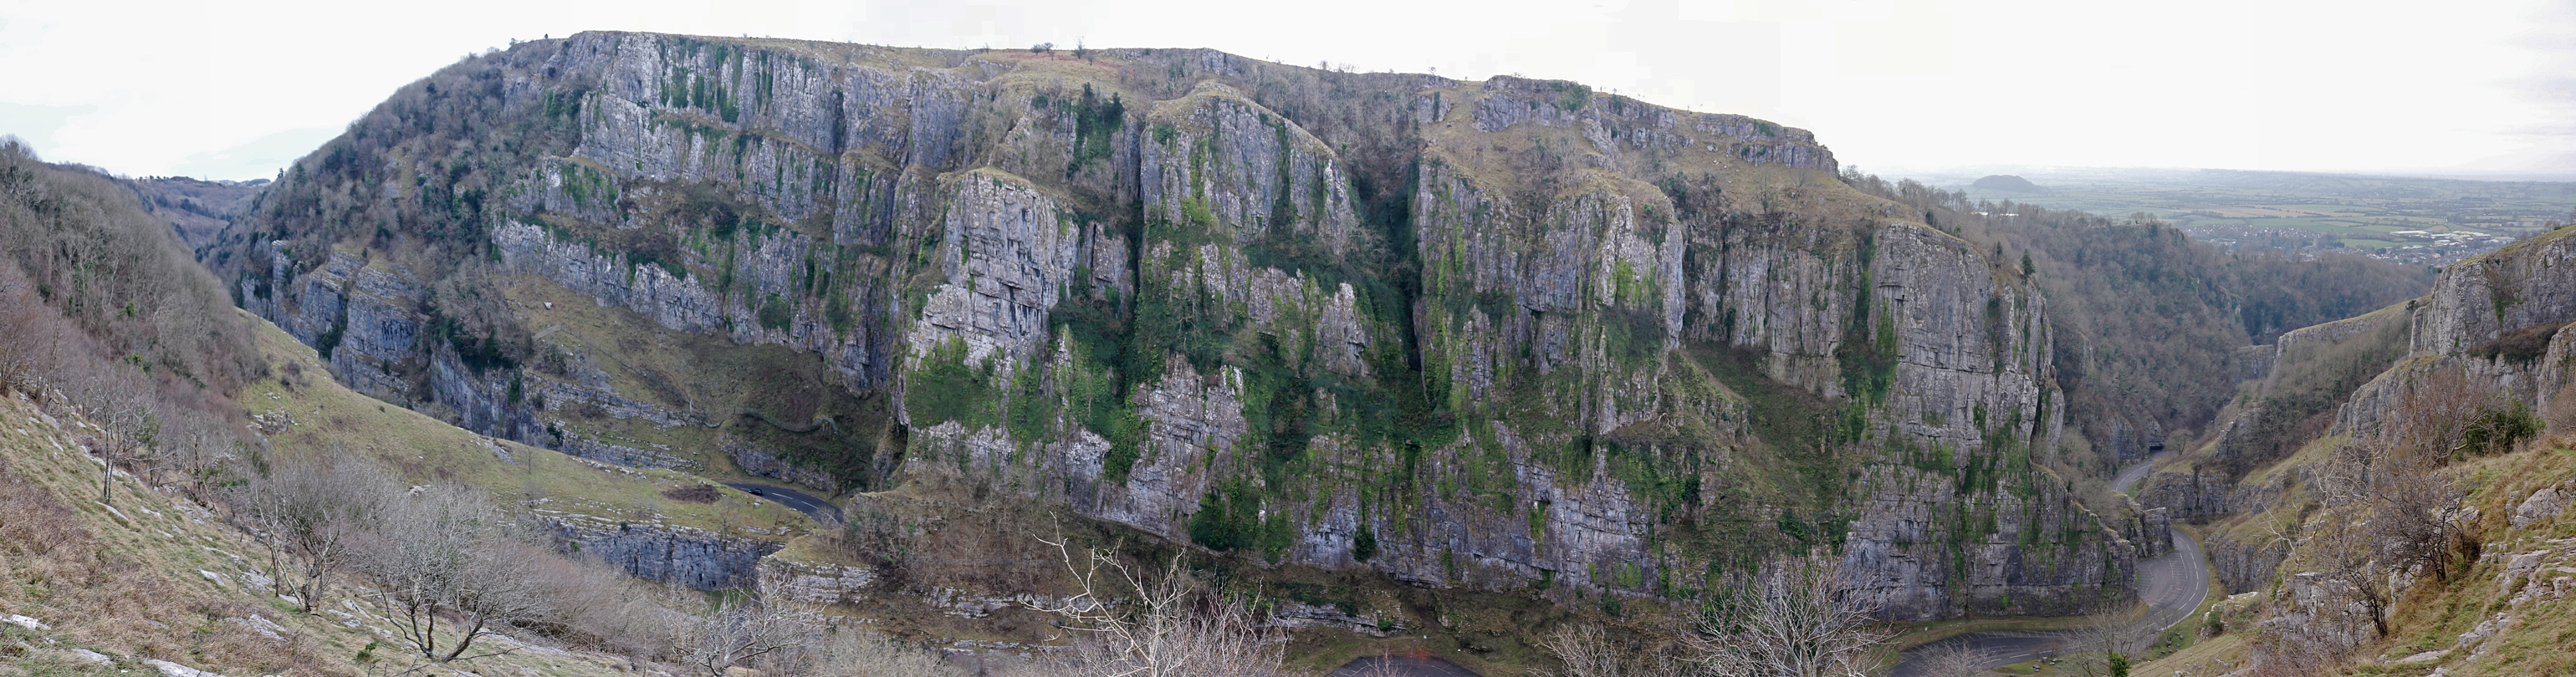 Cliffs on the south side of the gorge